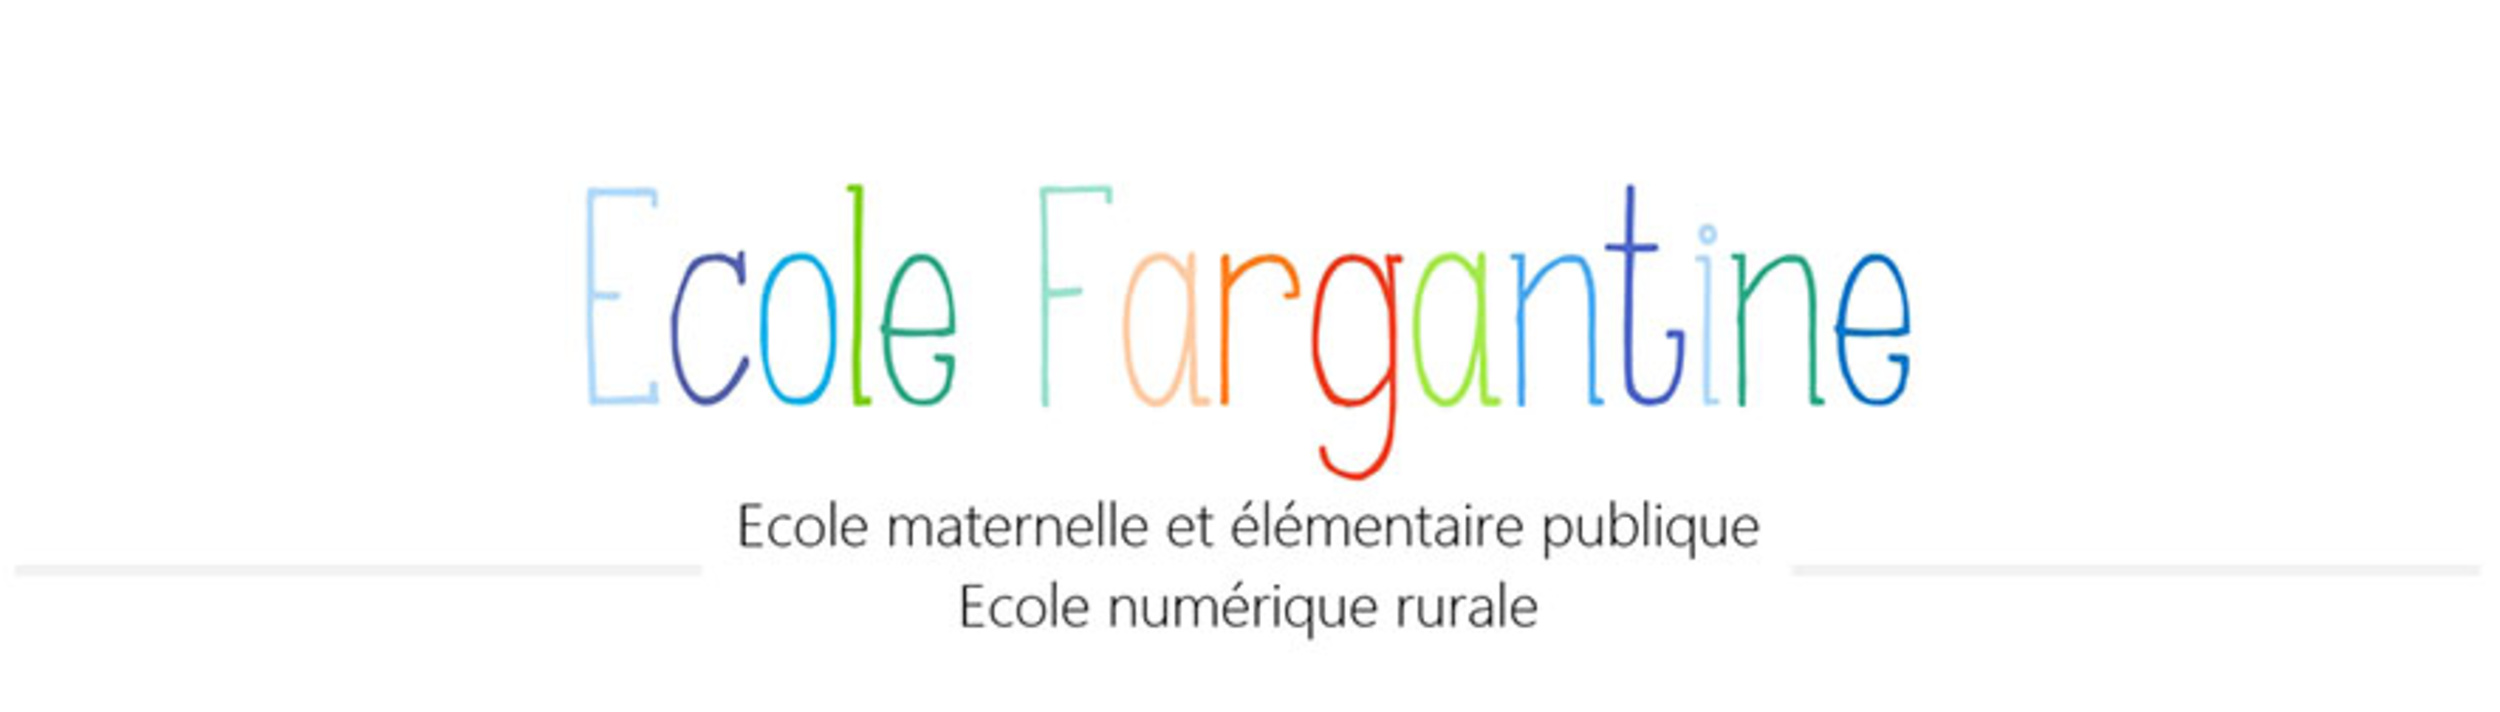 Association des Parents d'Elèves École Fargantine - Corlay